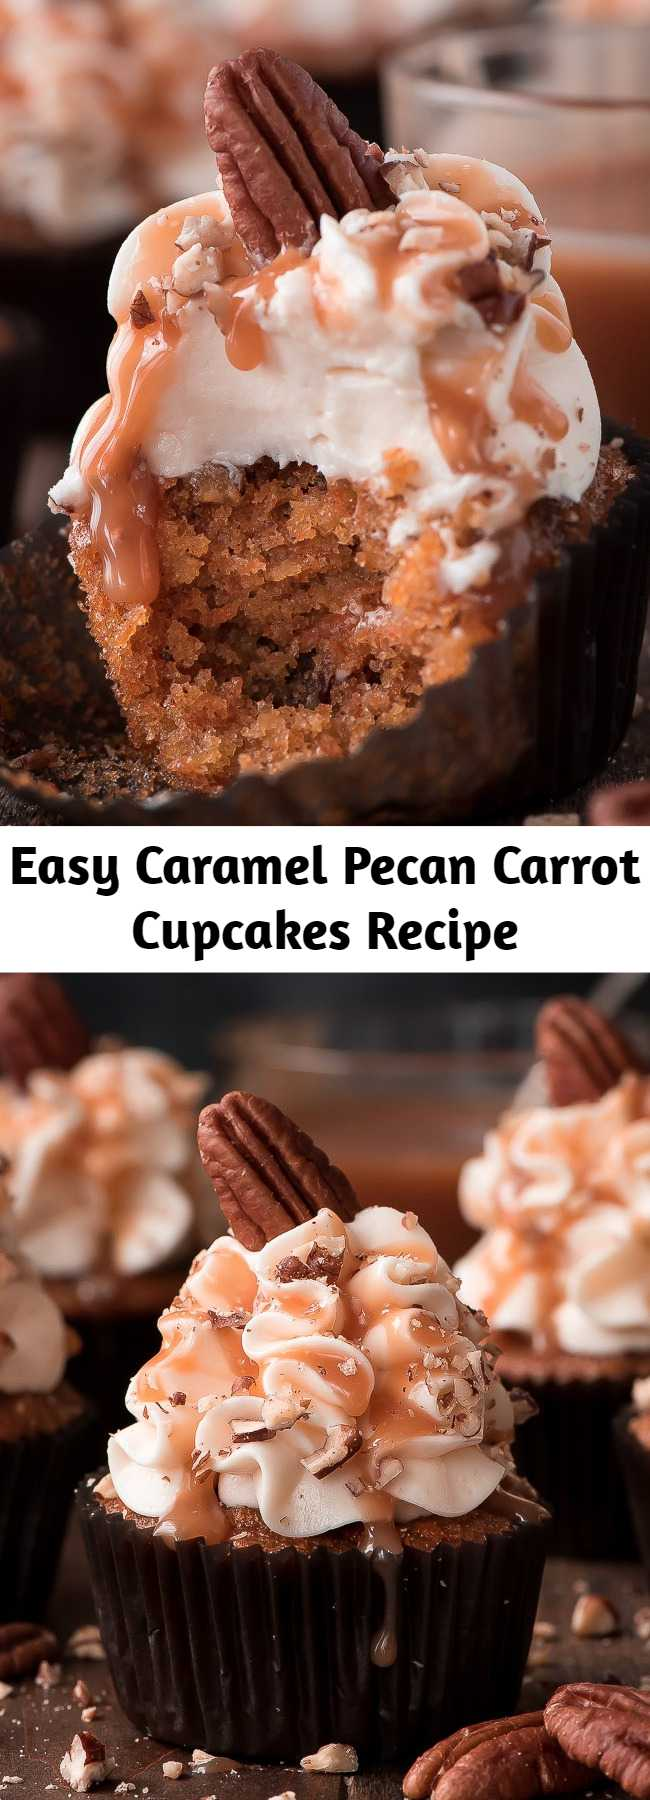 Easy Caramel Pecan Carrot Cupcakes Recipe - With a super moist cake and silky smooth cream cheese frosting, CARAMEL PECAN CARROT CUPCAKES are more than a dream come true.